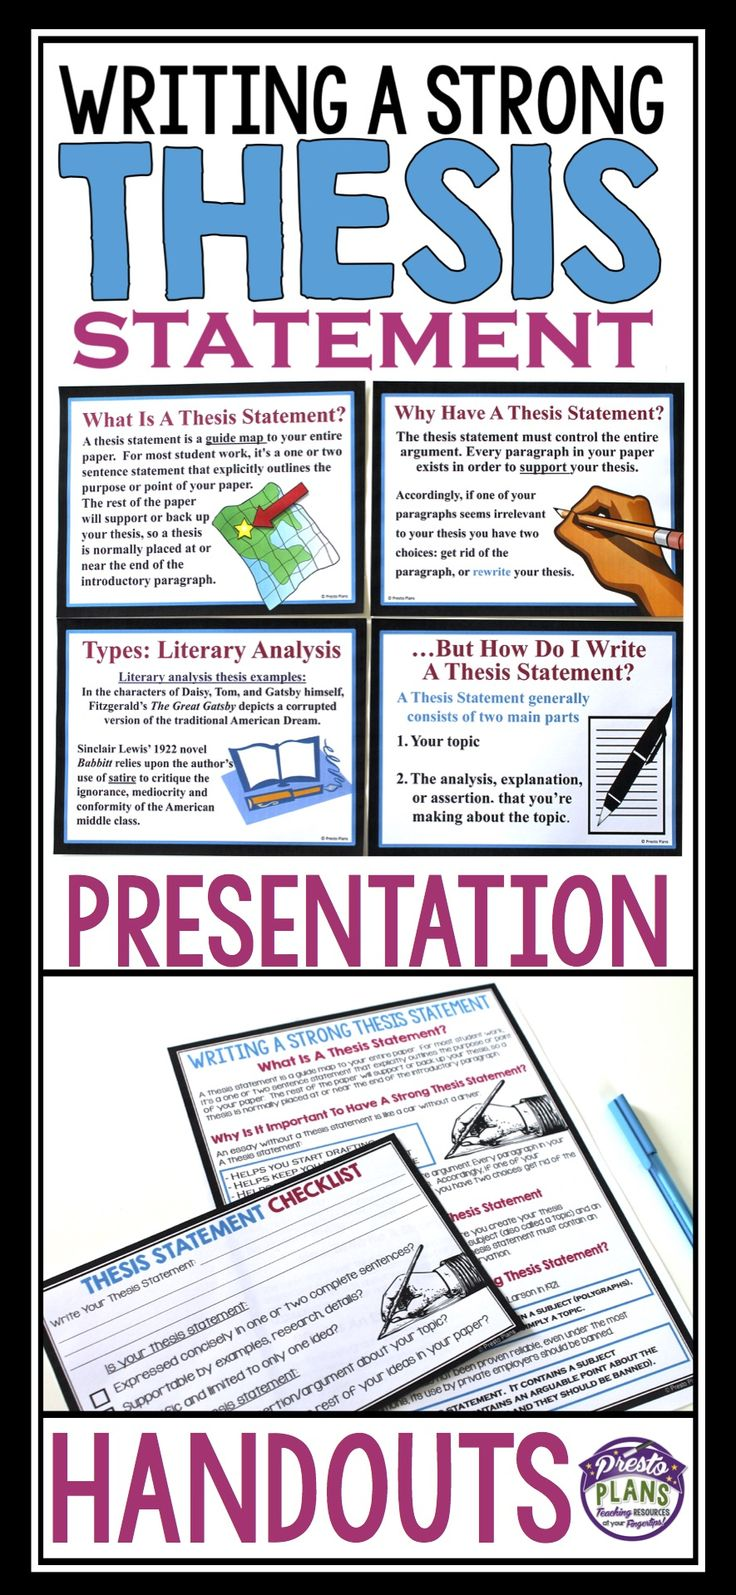 Writing a strong thesis statements is always a challenge for students. This resource will help them understand what a thesis statement is, why it is important to have one, and what a strong thesis statement looks like.